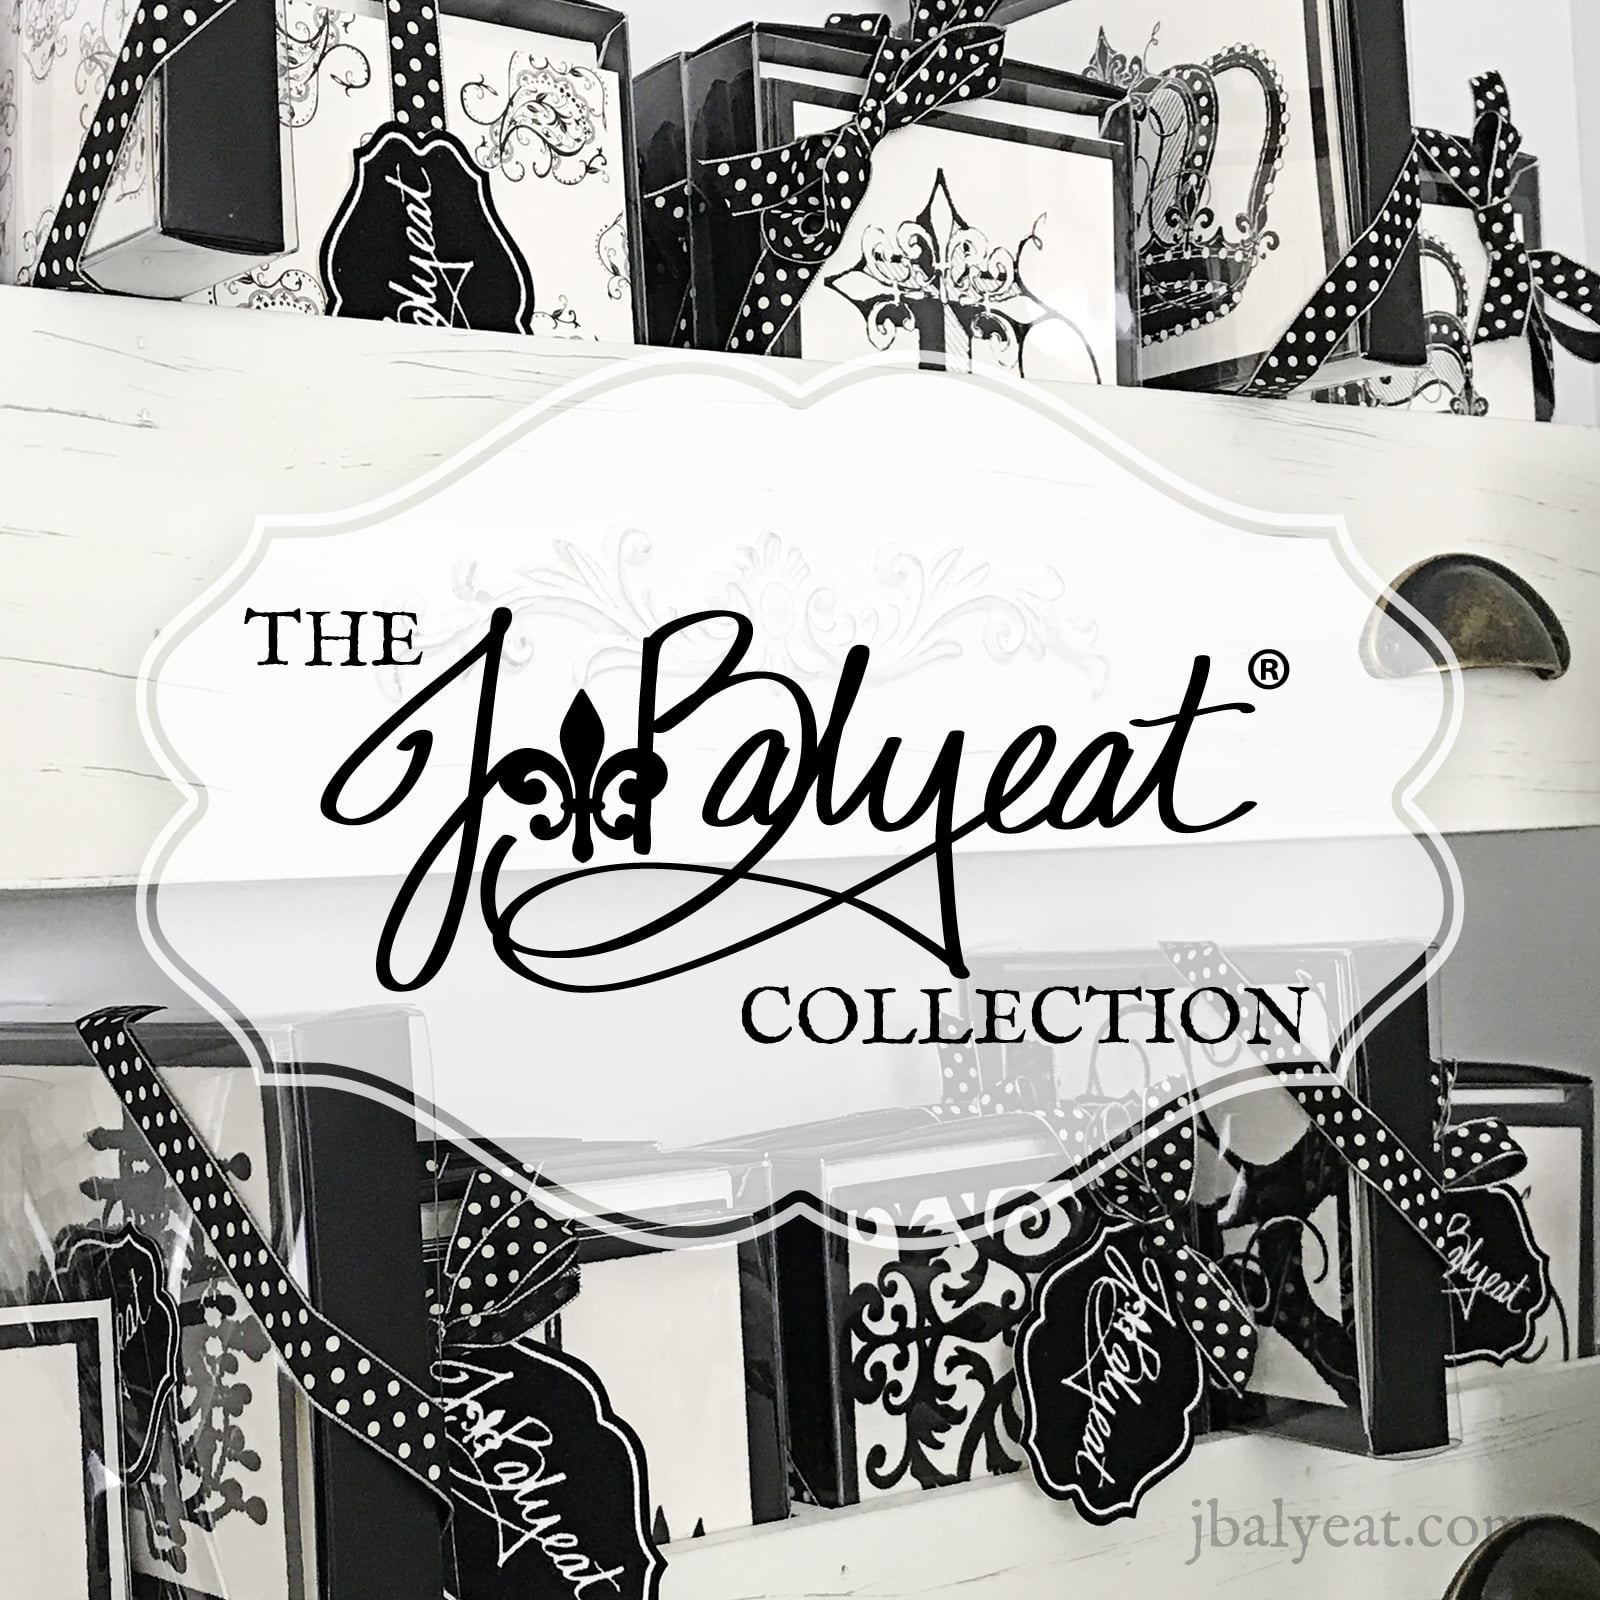 In the JBalyeat Collection, Beautiful Notecards Inspire Hope